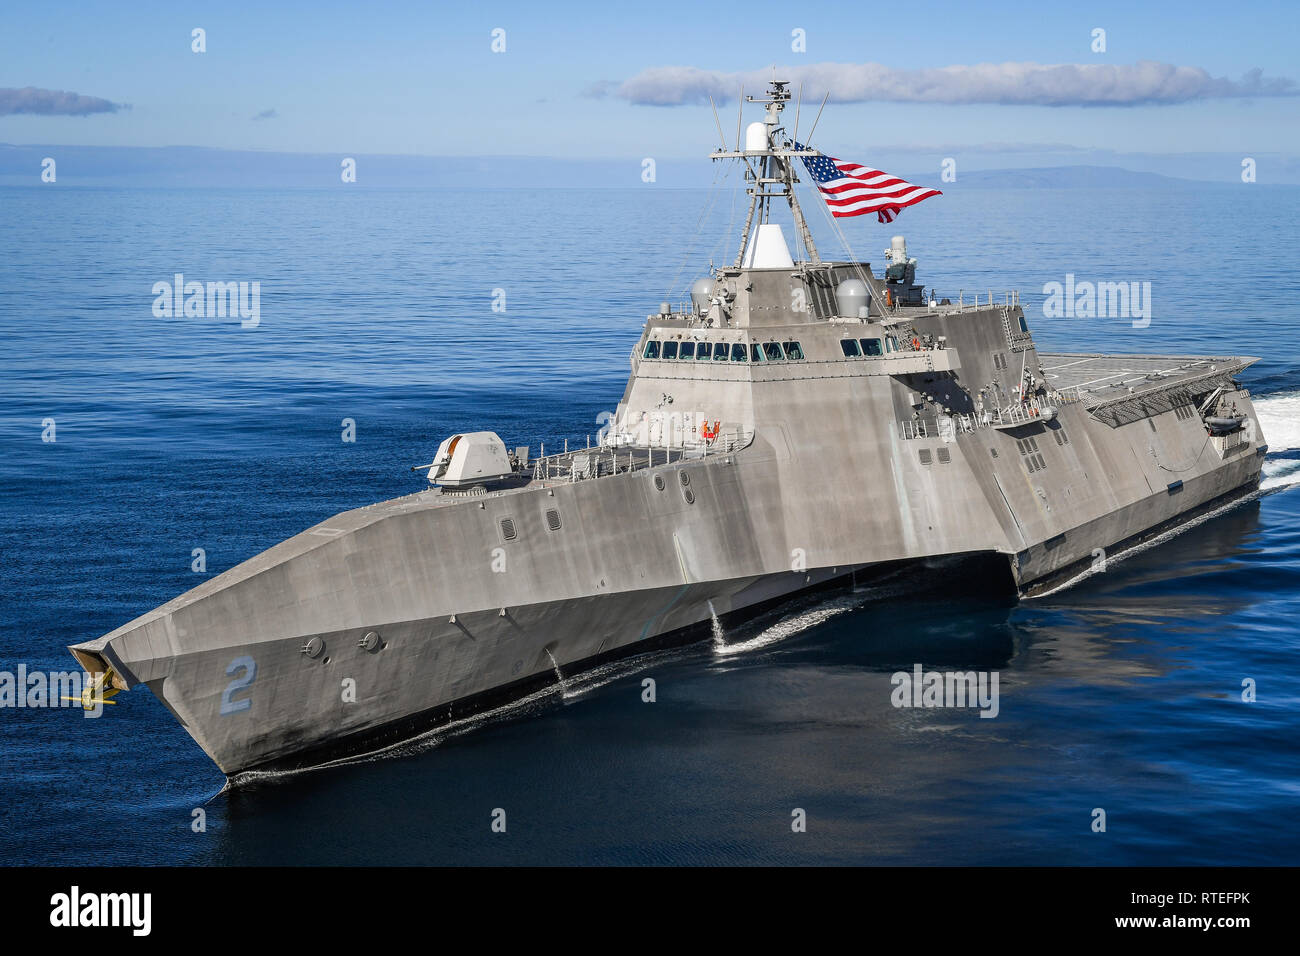 190227-N-FC670-1341 PACIFIC OCEAN (Feb. 27, 2019) The Independence variant littoral combat ship USS Independence (LCS 2) sails in the eastern Pacific.  LCS are high-speed, agile, shallow draft, mission-focused surface combatants designed for operations in the littoral environment, yet fully capable of open ocean operations. As part of the surface fleet, LCS has the ability to counter and outpace evolving threats independently or within a network of surface combatants. (U.S. Navy photo by Chief Mass Communication Specialist Shannon Renfroe/Released) - Stock Image